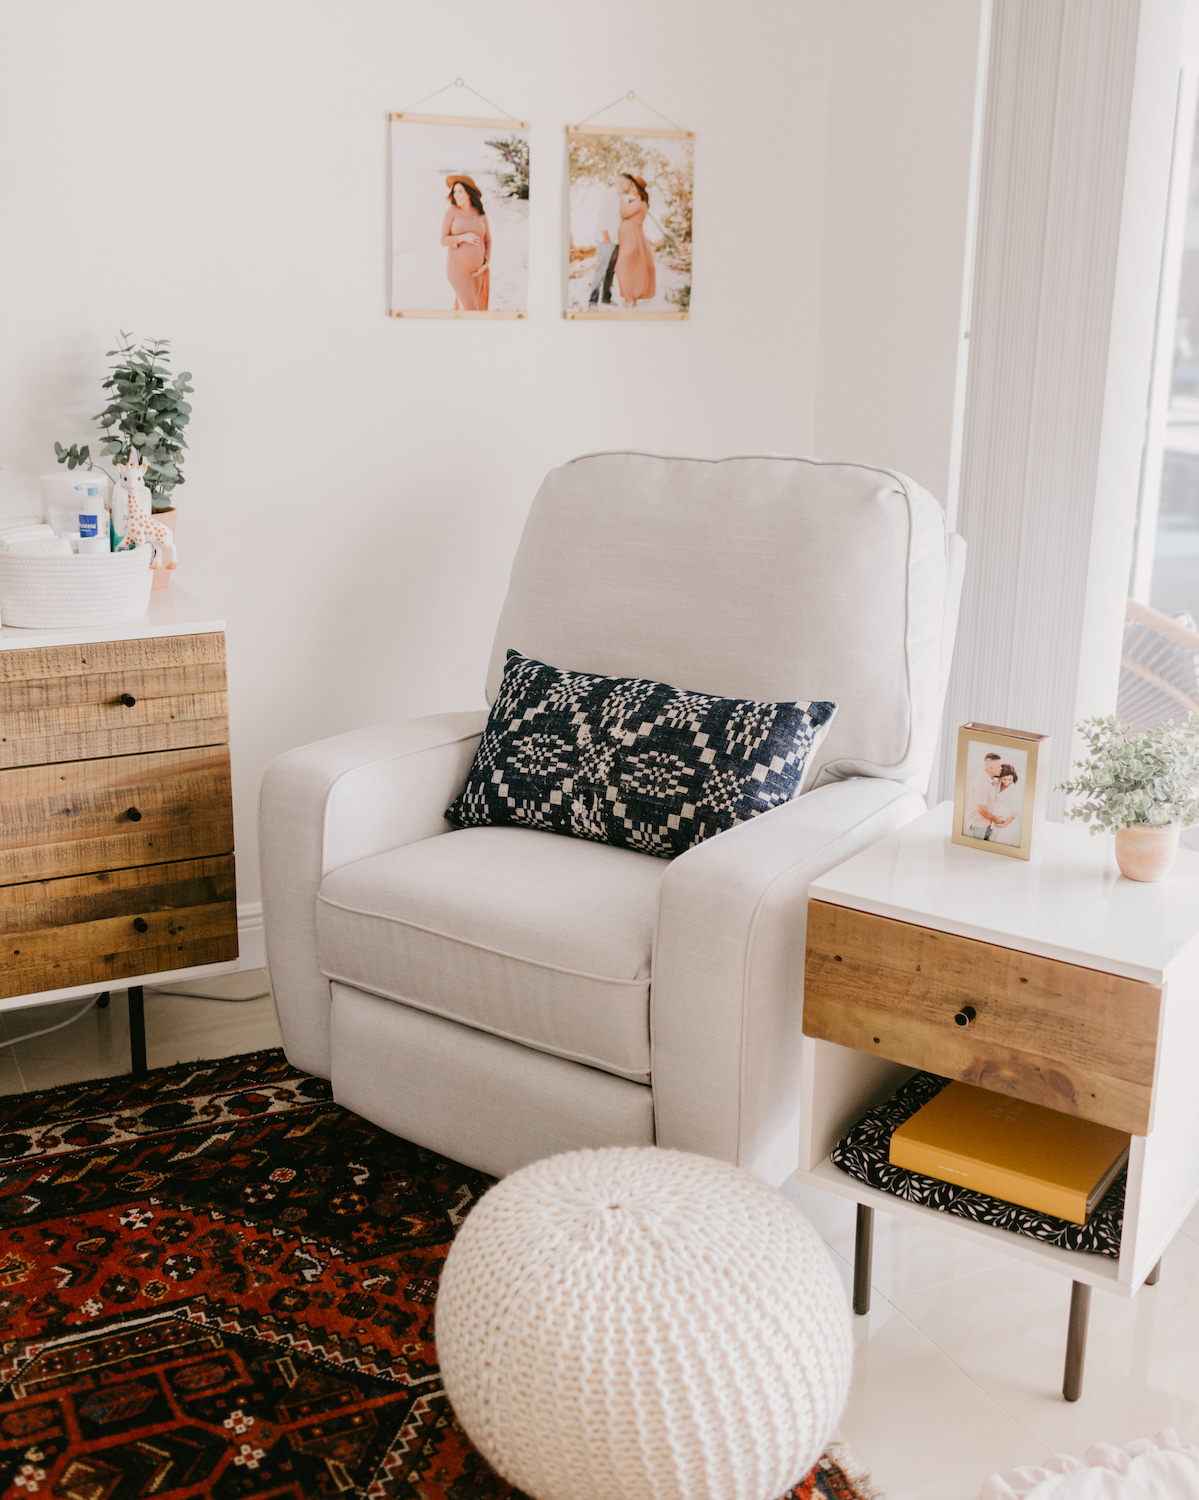 Couch, side table, and pouf with nursery wall decor in background